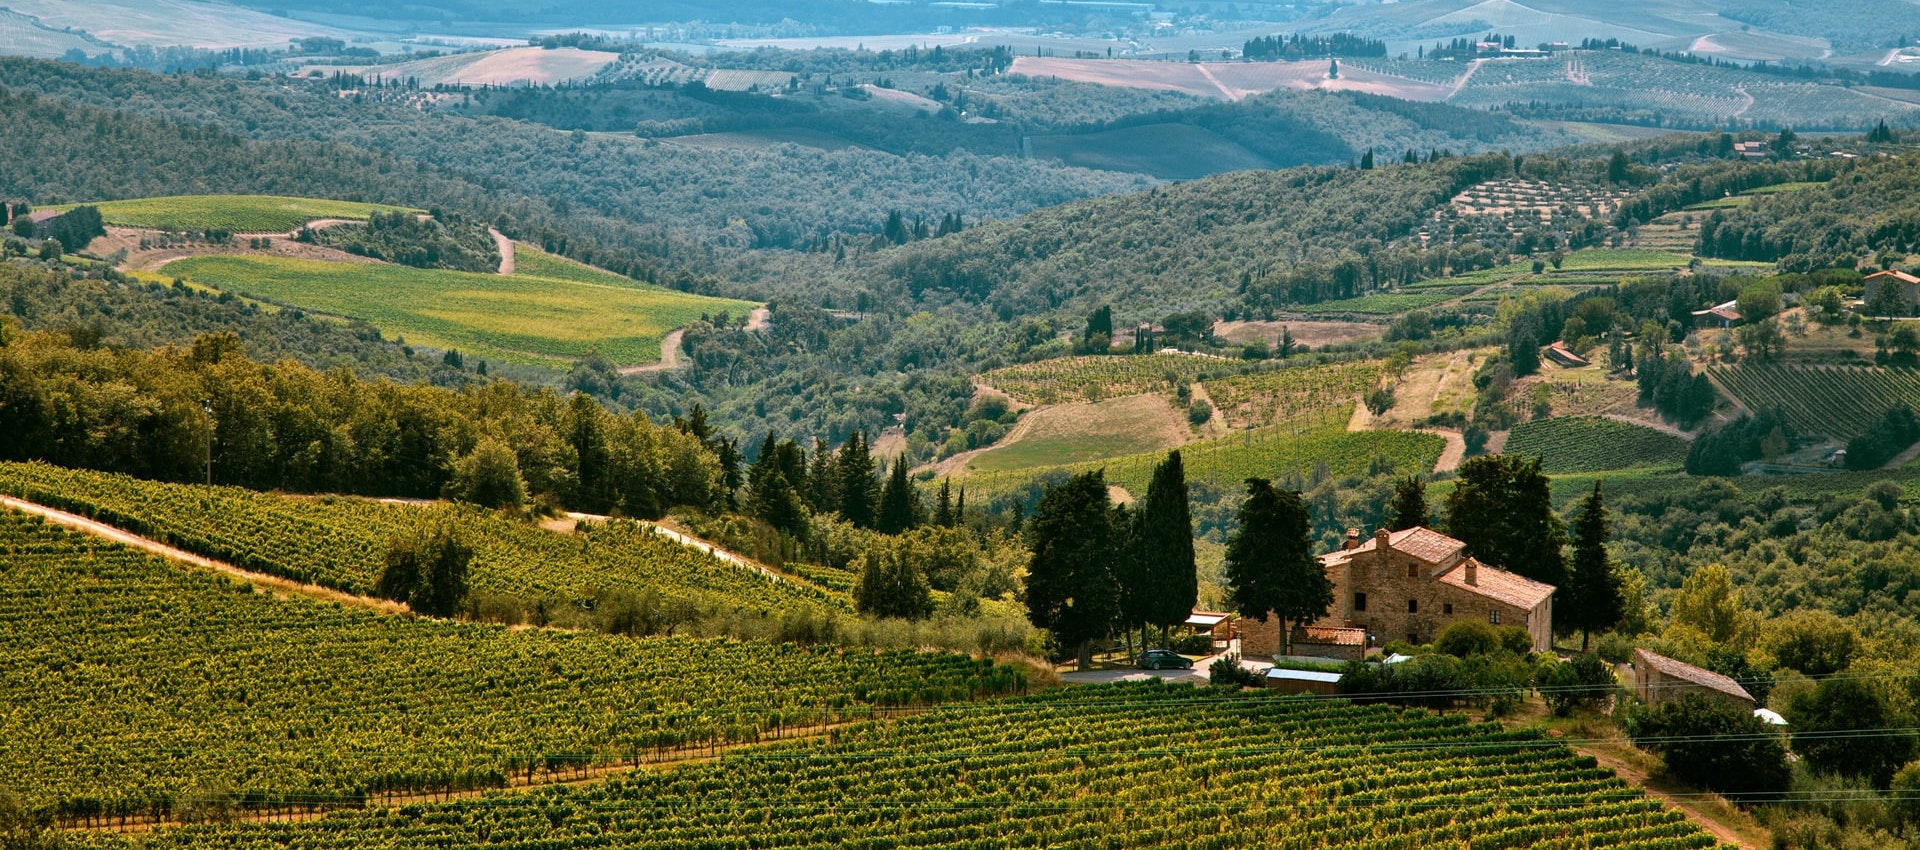 Things to do in Chianti Tuscany